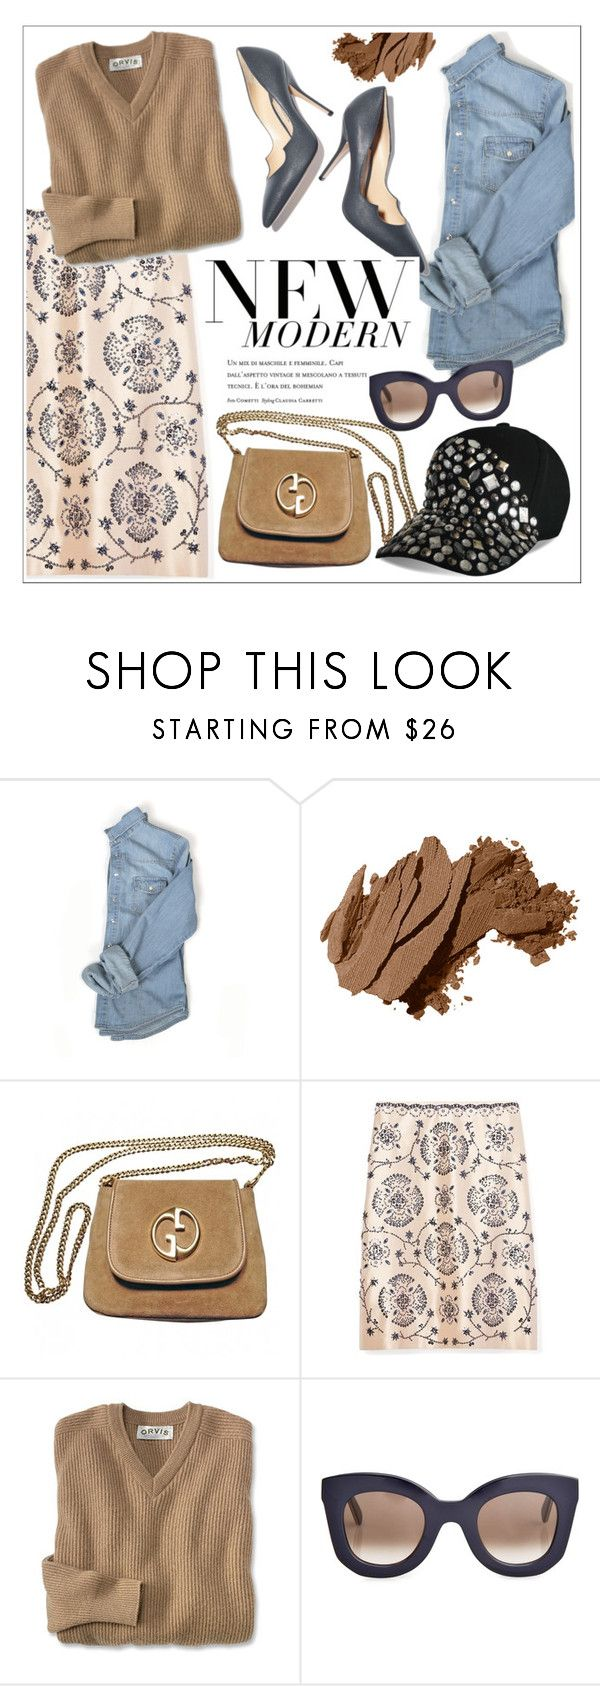 """""""New Modern-WIMNYC"""" by teoecar ❤ liked on Polyvore featuring Bobbi Brown Cosmetics, Paul Andrew, Gucci, Tory Burch, CÉLINE, Amica and modern"""